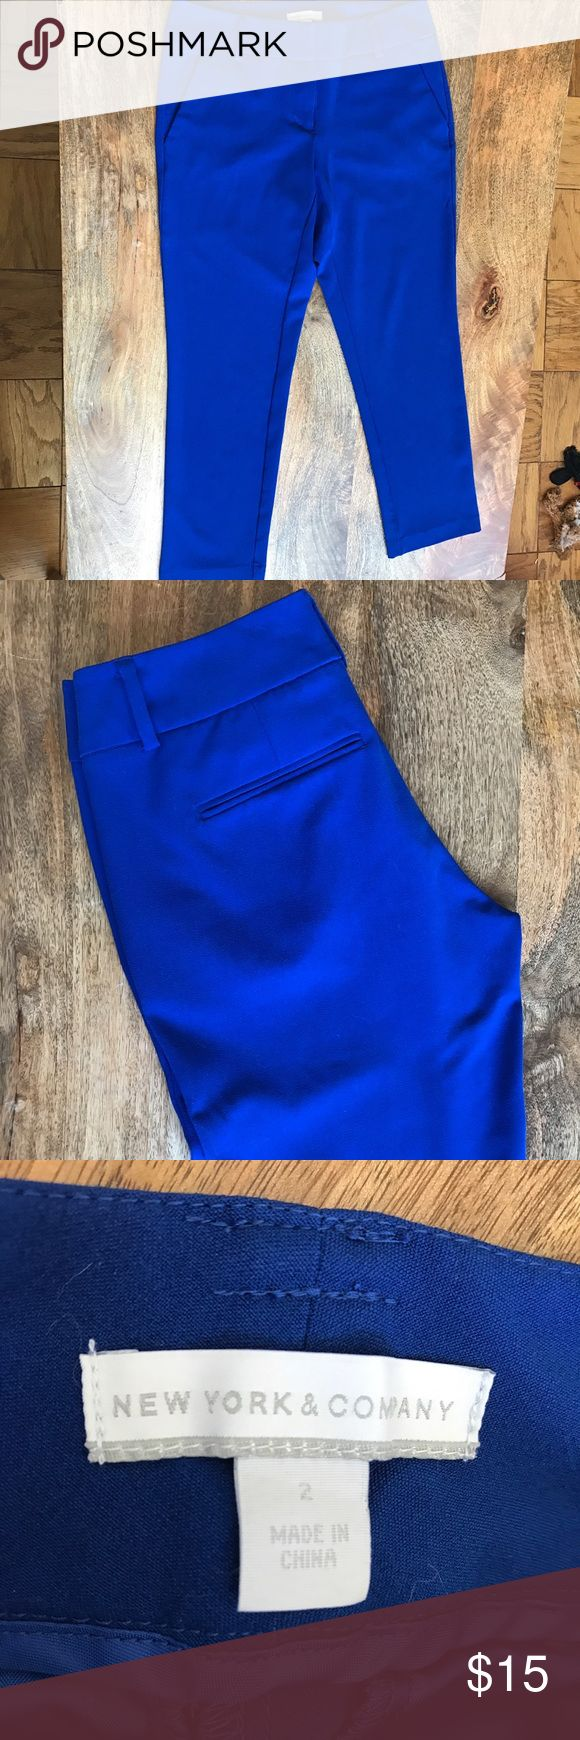 New York & Co. Blue Dress Pants Perfect for the office! These bright blue ankle length trousers by NY&Co. are a great statement piece! Slight stretch. New York & Company Pants Trousers